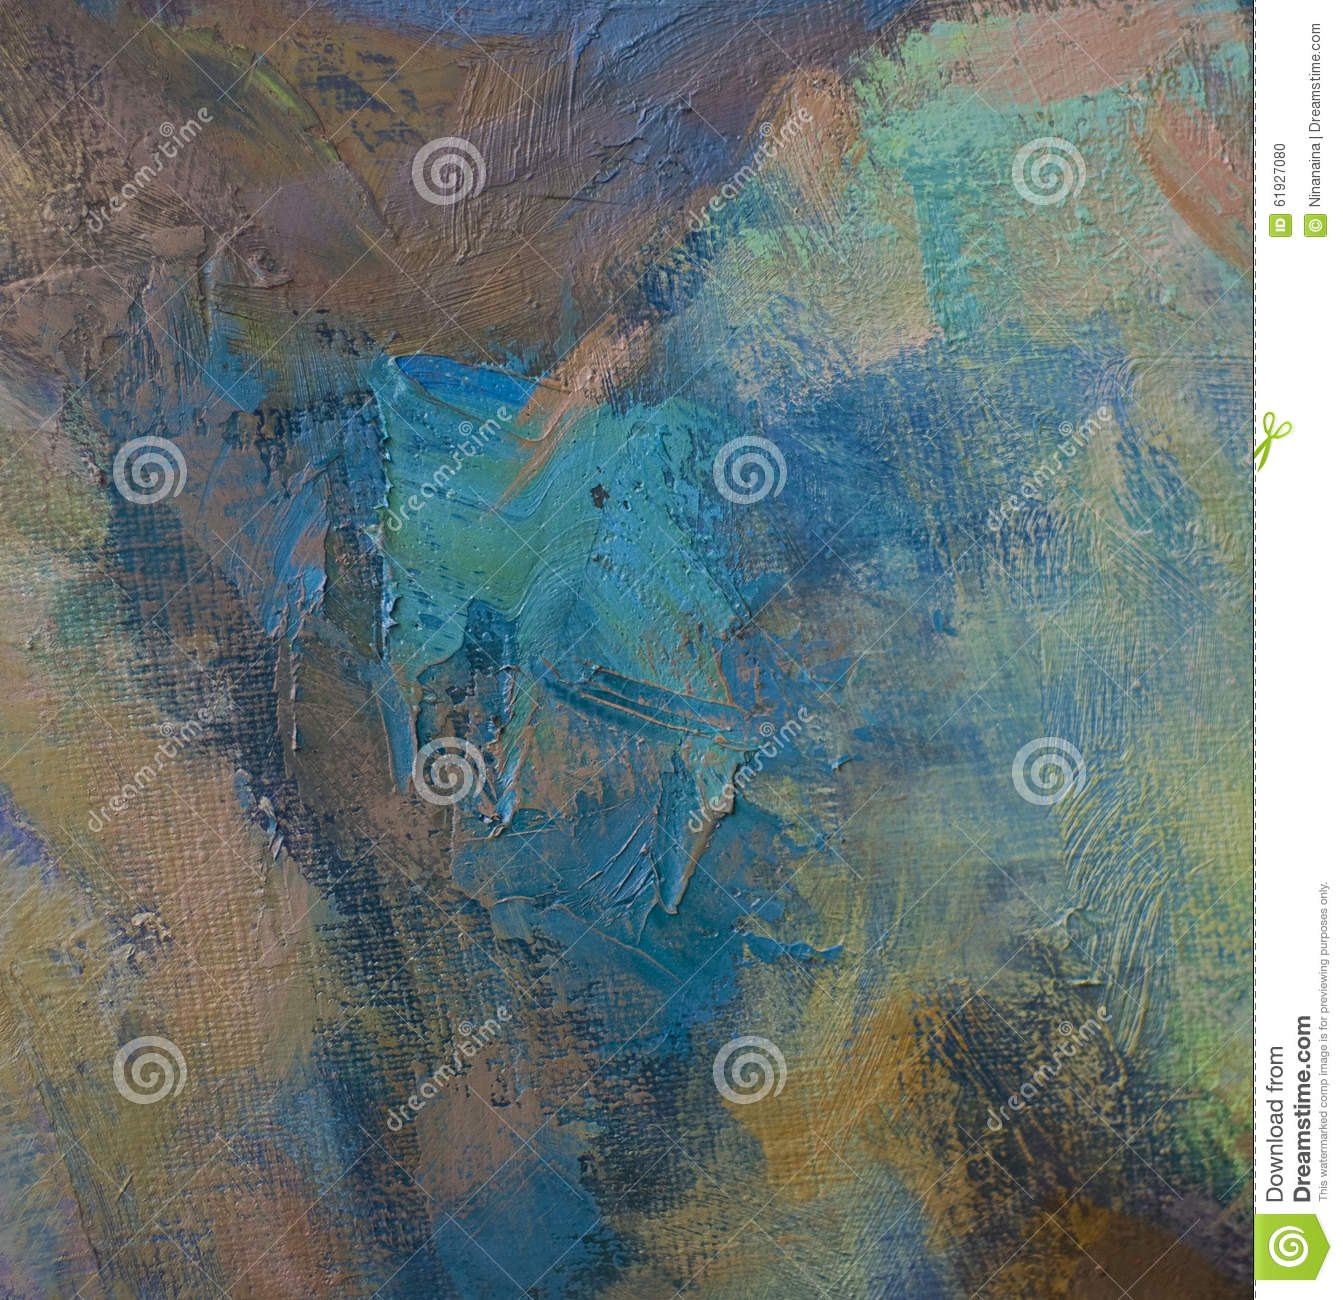 Messy Abstract Stock Illustration - Image: 61927080